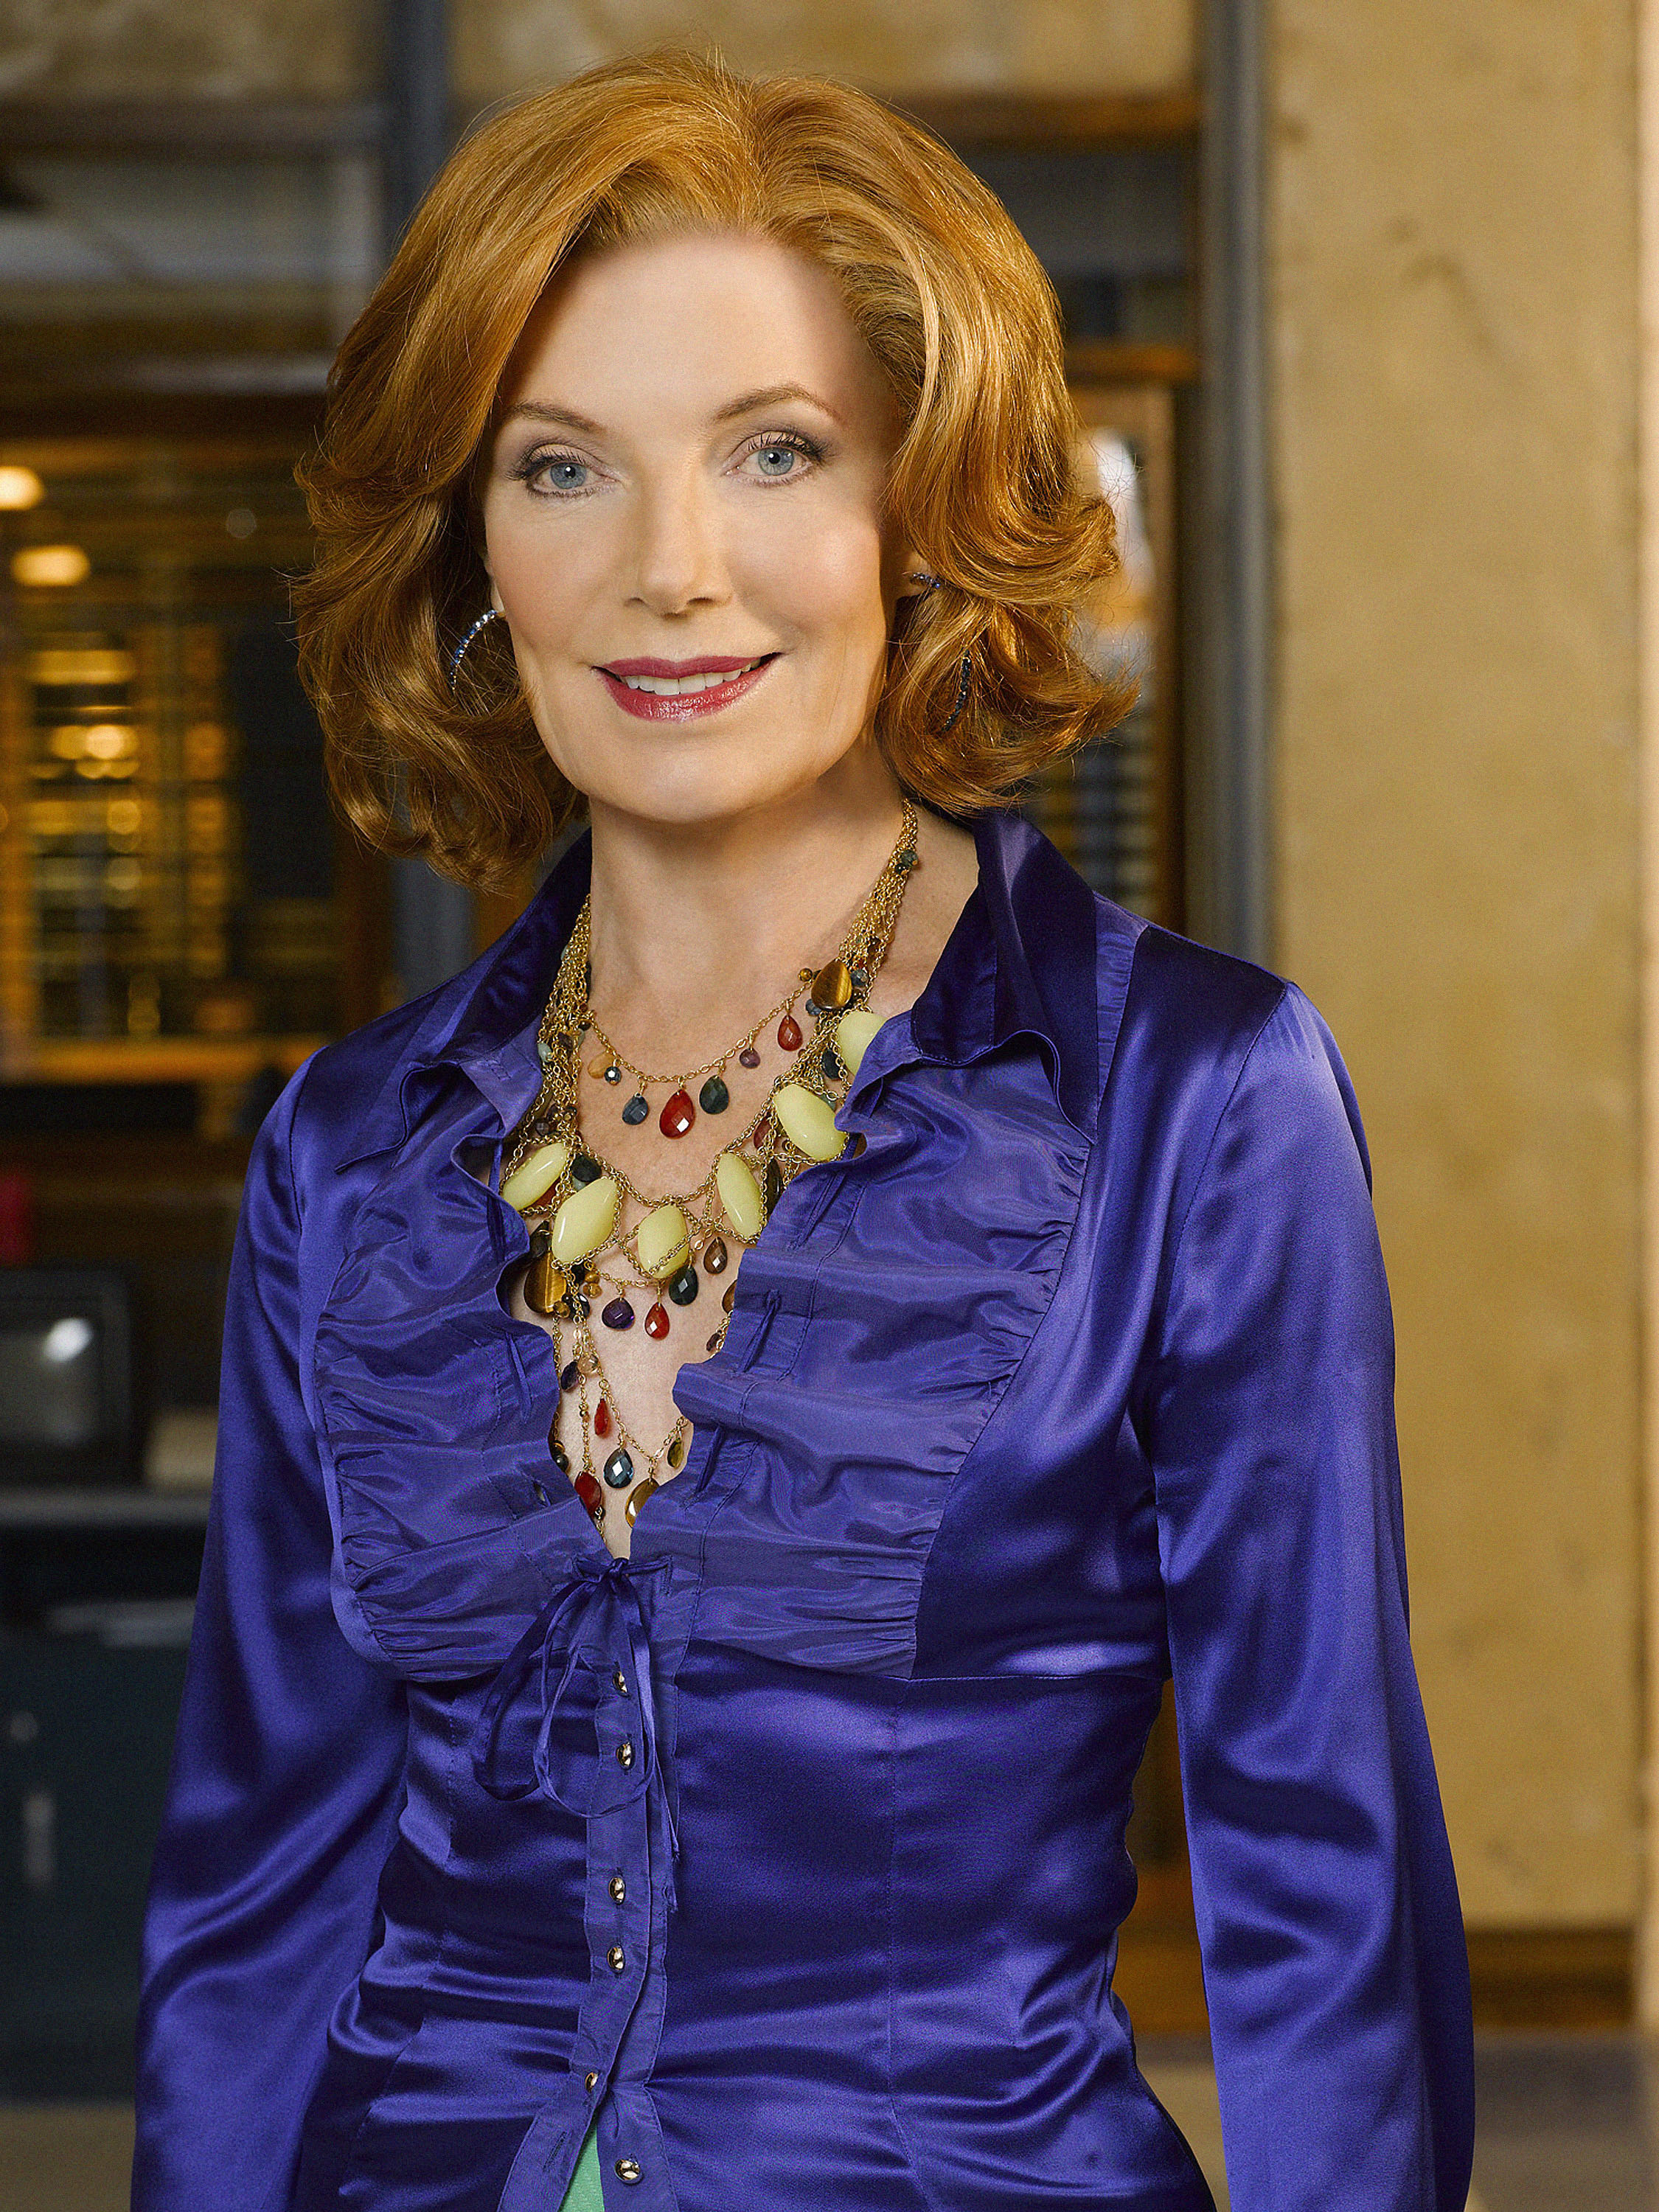 susan sullivan images castle season 3 cast promo photos hd wallpaper and background photos. Black Bedroom Furniture Sets. Home Design Ideas